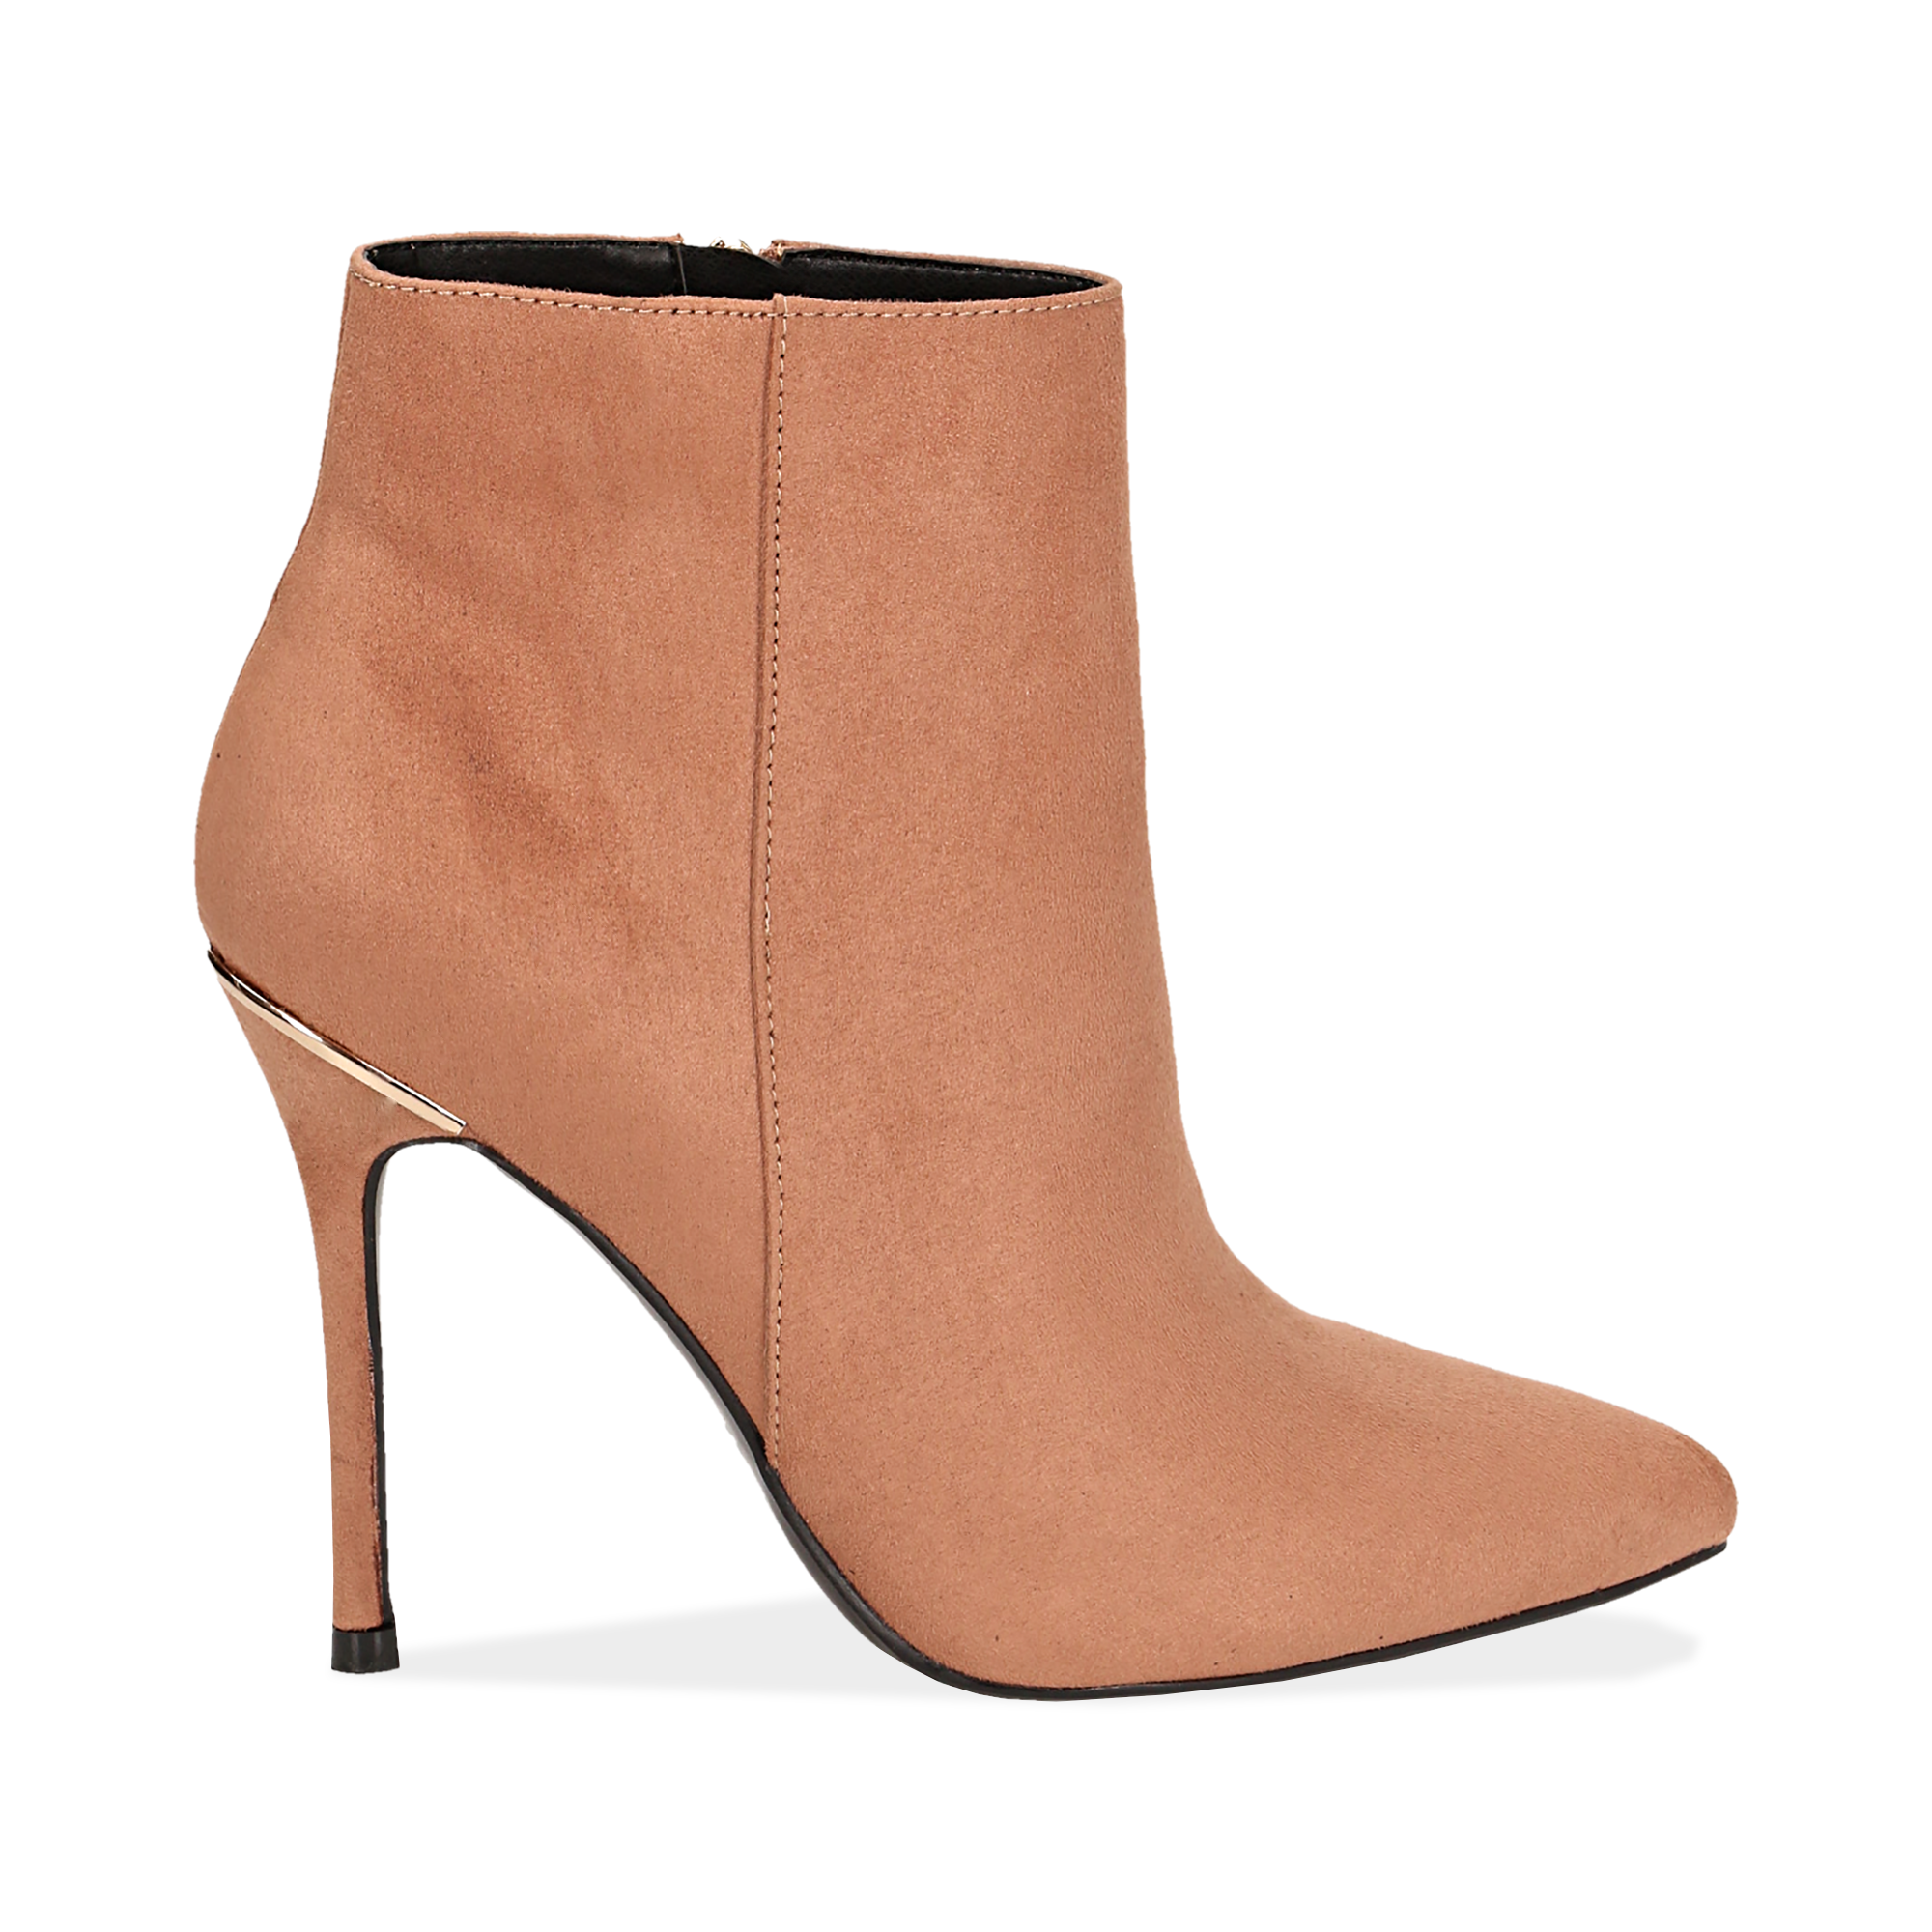 Ankle boots nude in microfibra, tacco 10,5 cm